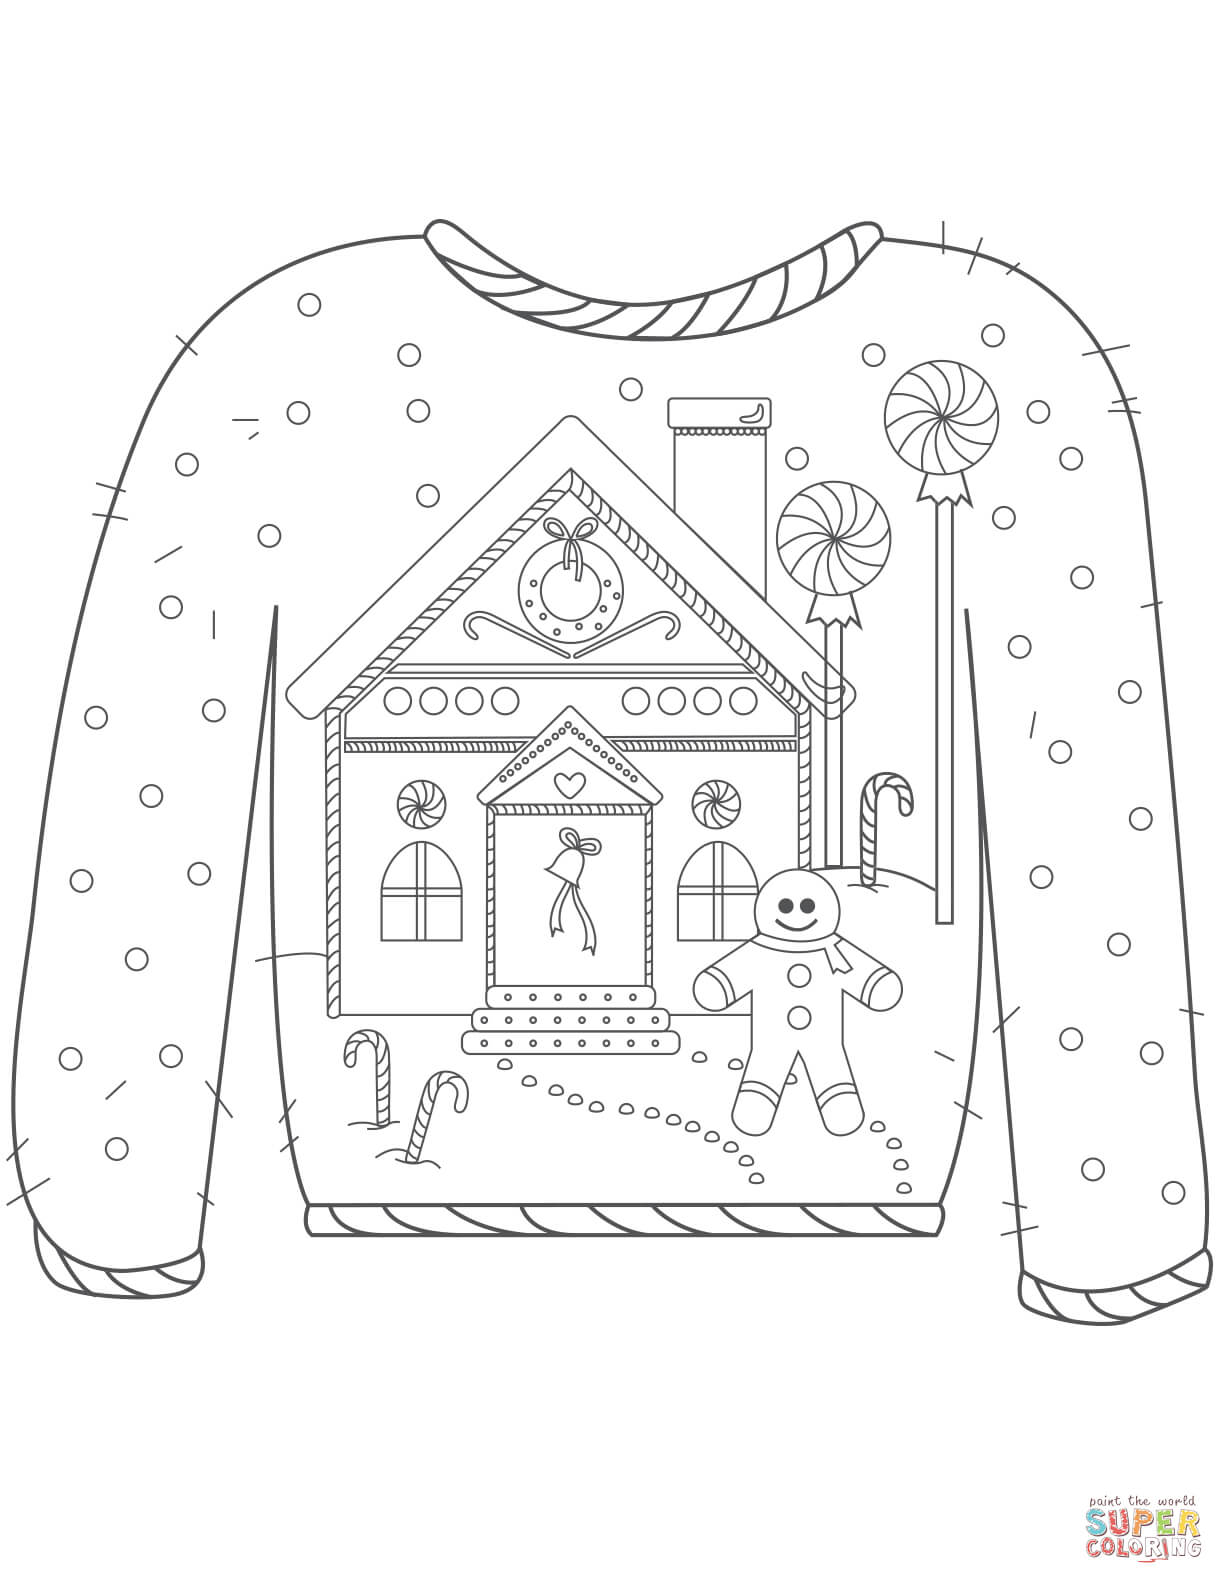 sweater coloring page sweater coloring page at getcoloringscom free printable sweater page coloring